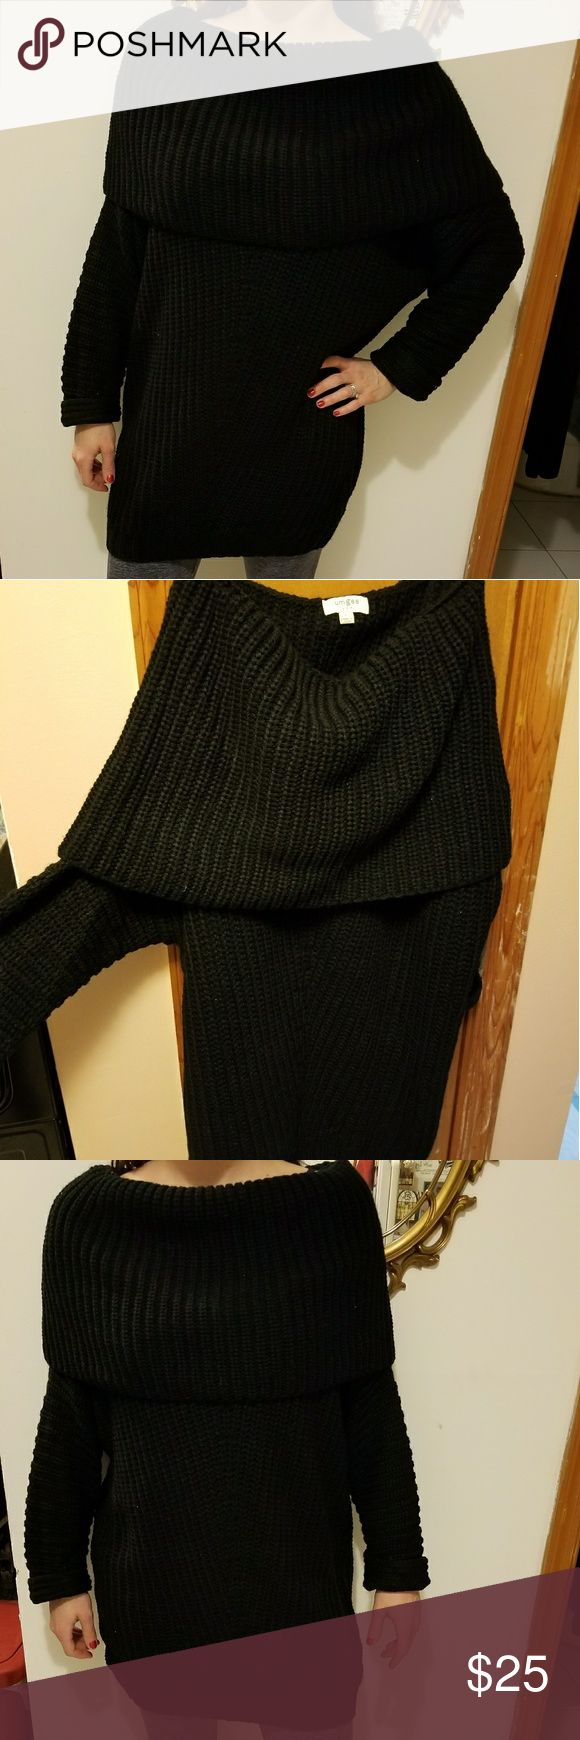 Sweater Cute and cozy chunky black sweater. Holdover top making it one shoulder or off the shoulder. Long so it covers the booty and falls on the things. So cute with leggings! New without tags. Unworn. Brand umgee. Size large, but can also fit a medium. I am 5'7 and 140 pounds and modeling it in the pic. Umgee Sweaters